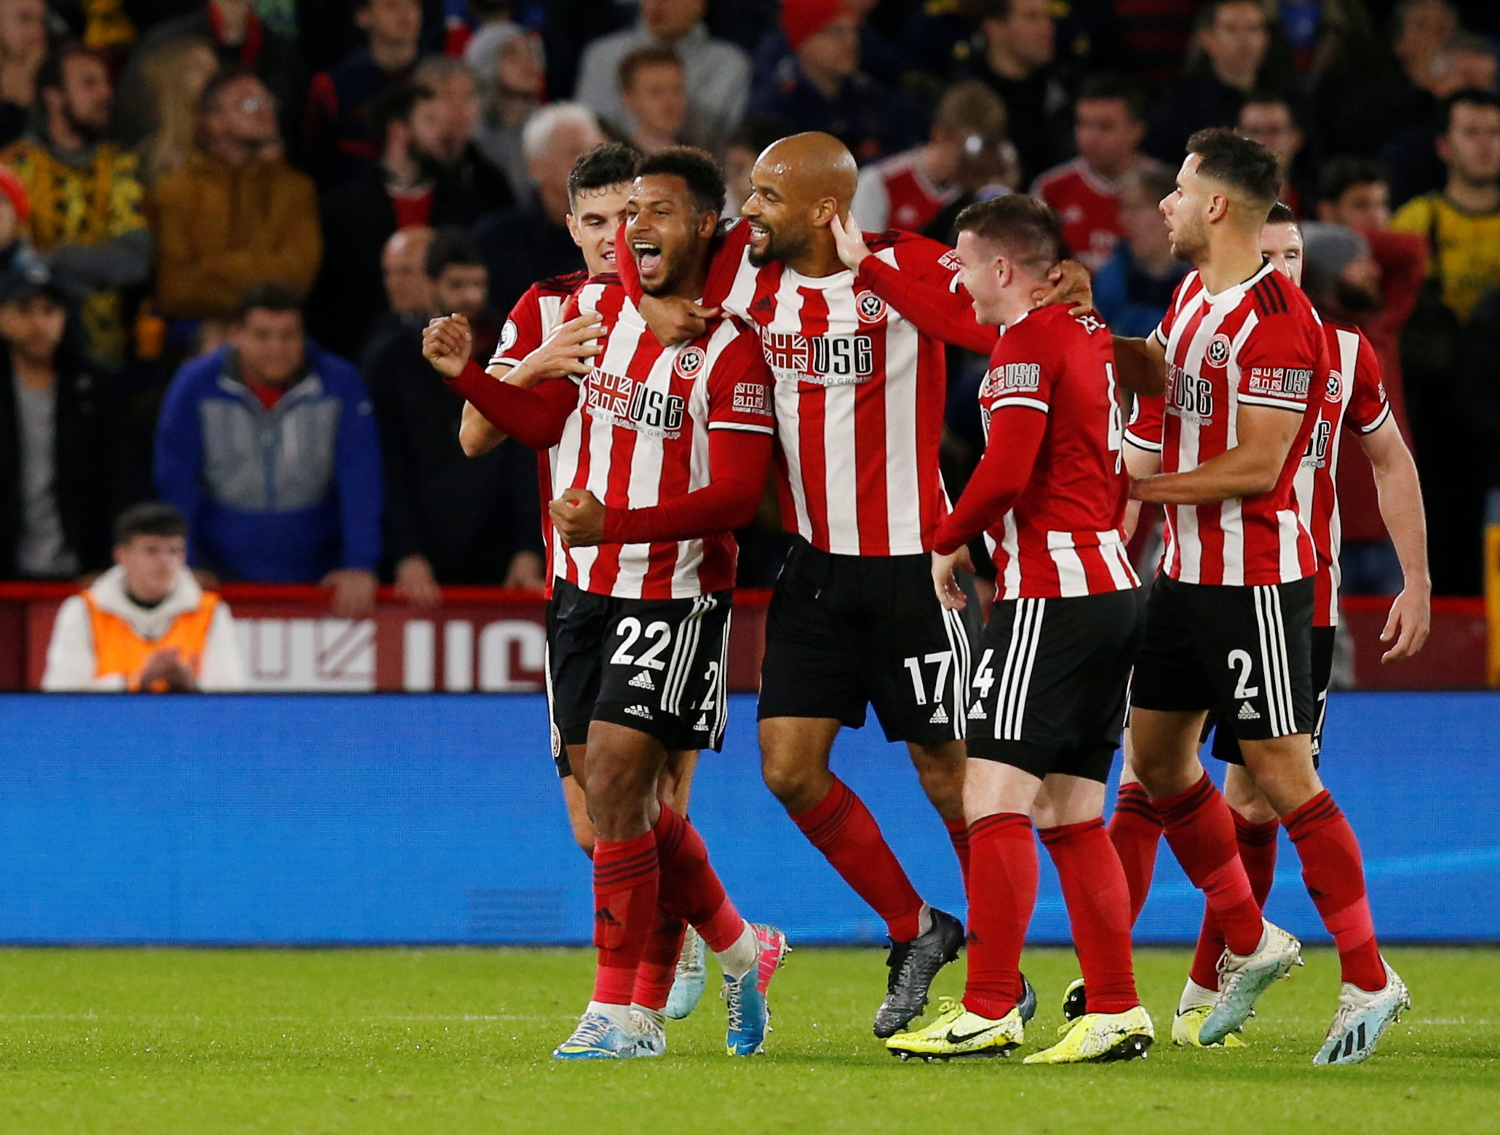 Sheffield United Relegated From The Premier League, Who Will Follow Them?